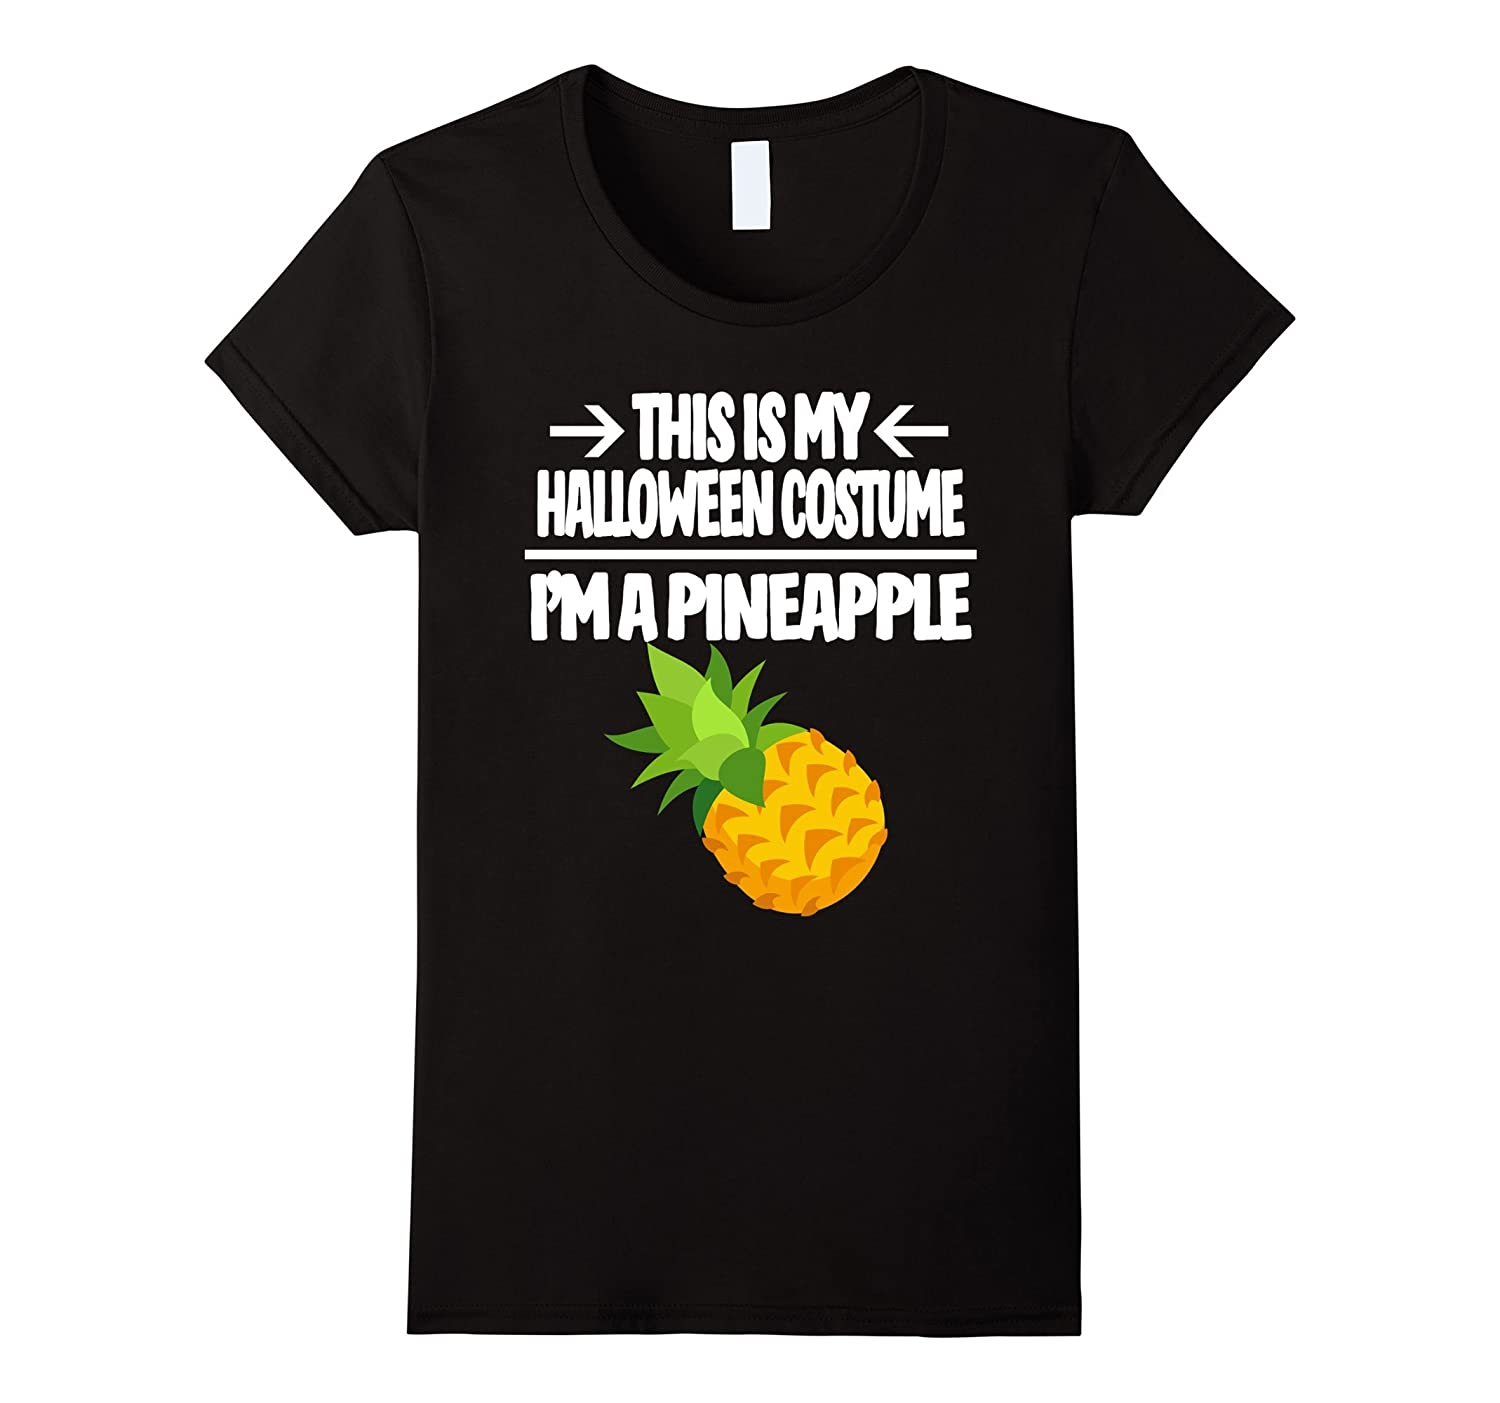 Pineapple Halloween Costume Shirt - Men Women Youth Sizes